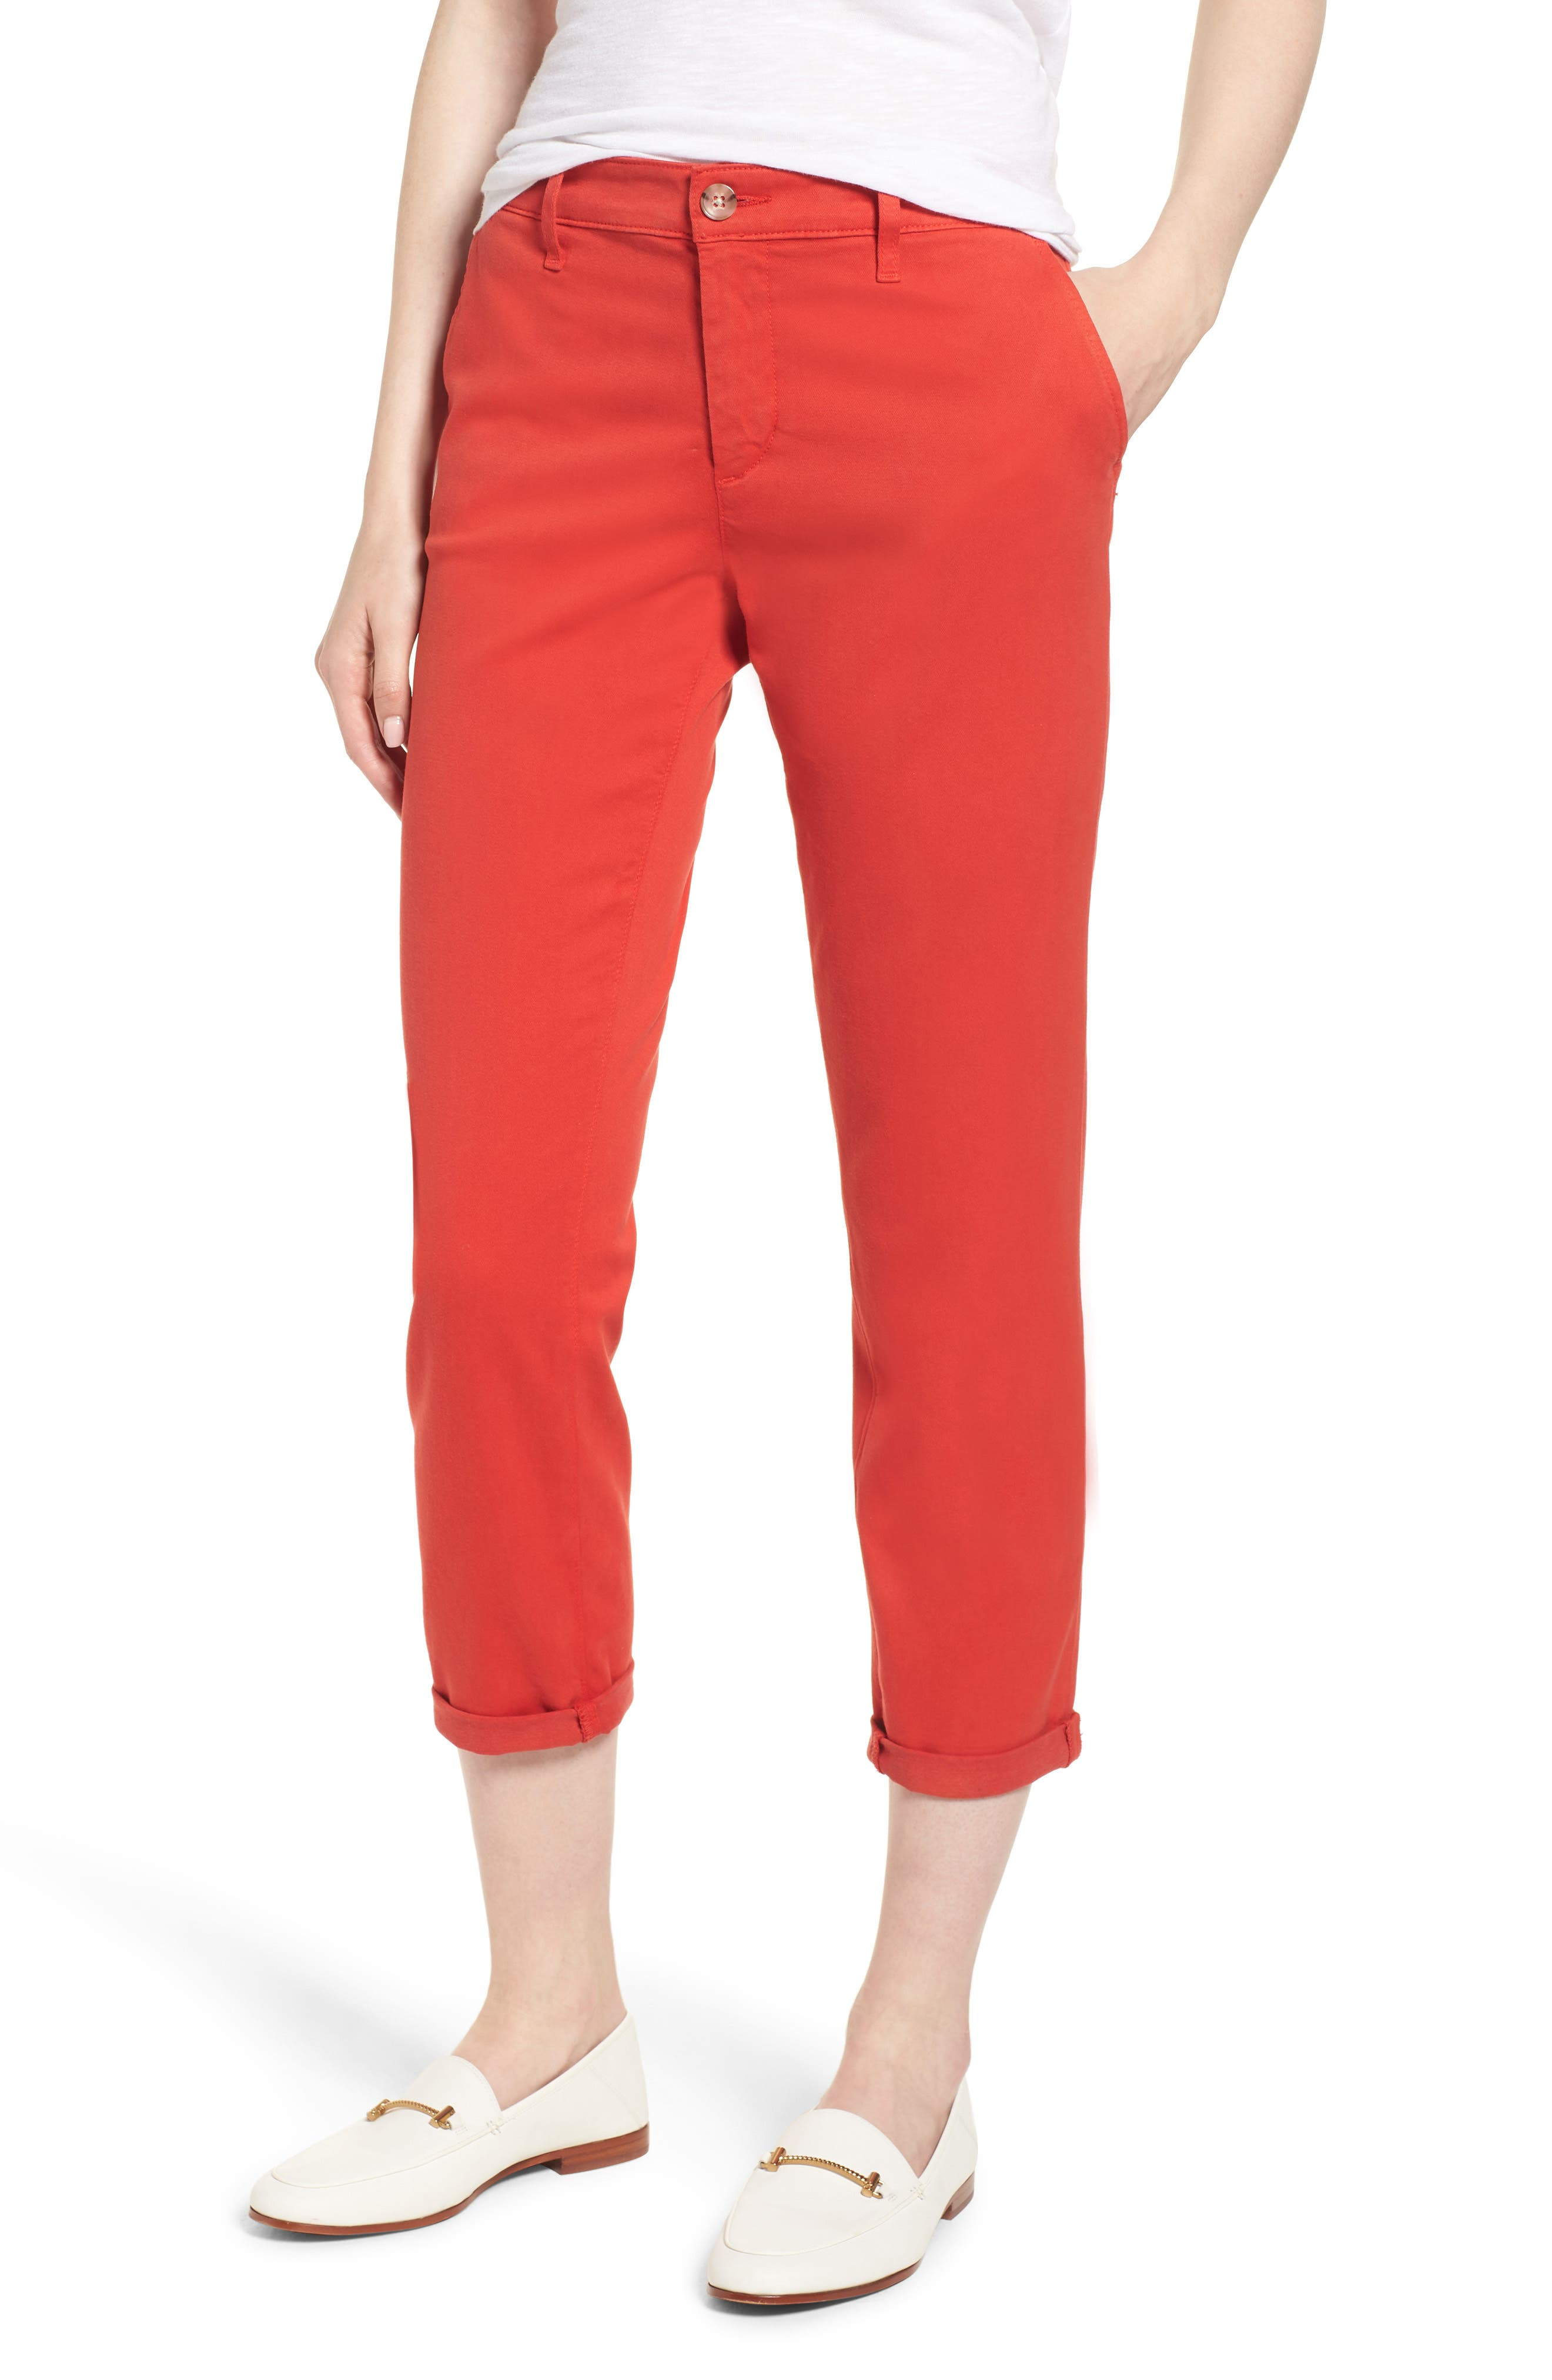 Caden Crop Twill Trousers,                         Main,                         color, Red Poppy